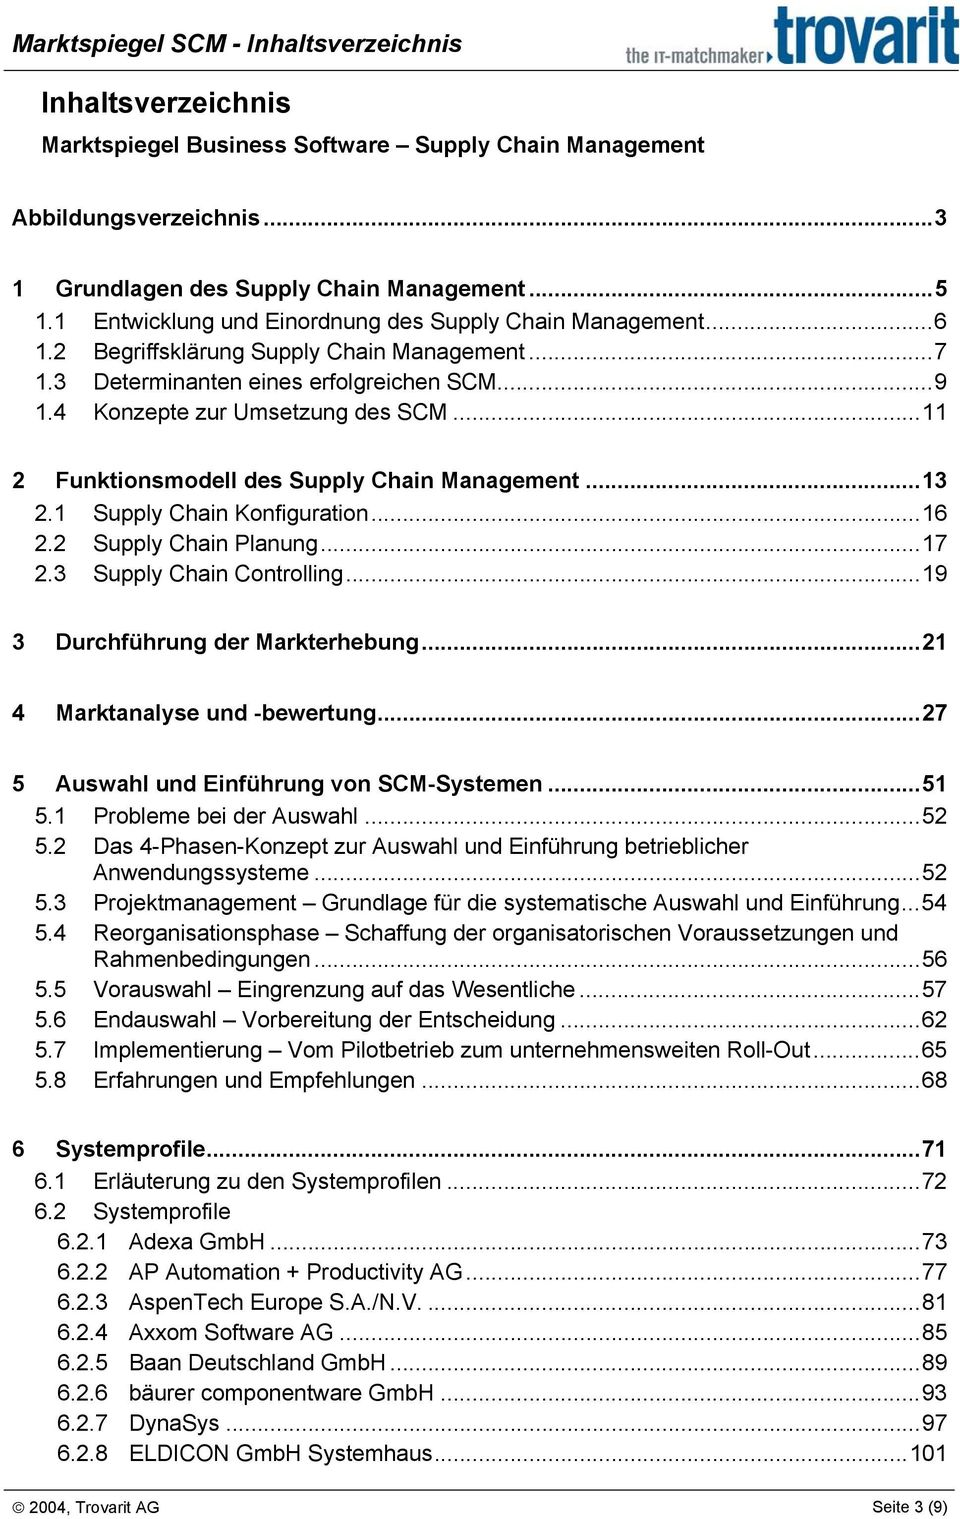 ..11 2 Funktionsmodell des Supply Chain Management...13 2.1 Supply Chain Konfiguration...16 2.2 Supply Chain Planung...17 2.3 Supply Chain Controlling...19 3 Durchführung der Markterhebung.